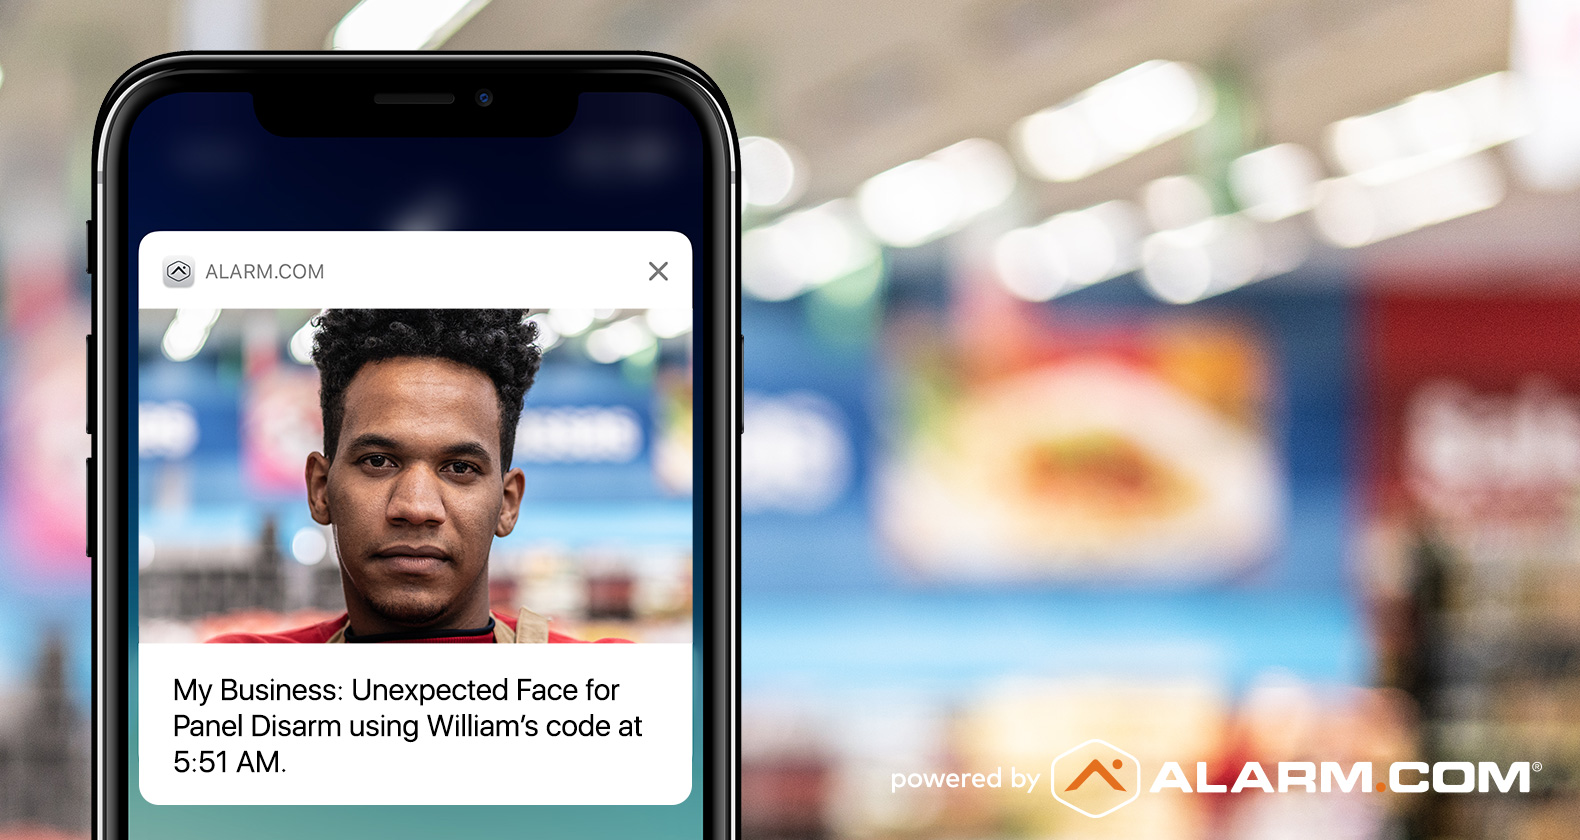 Alarm.com Face Recognition Alert 3.jpg